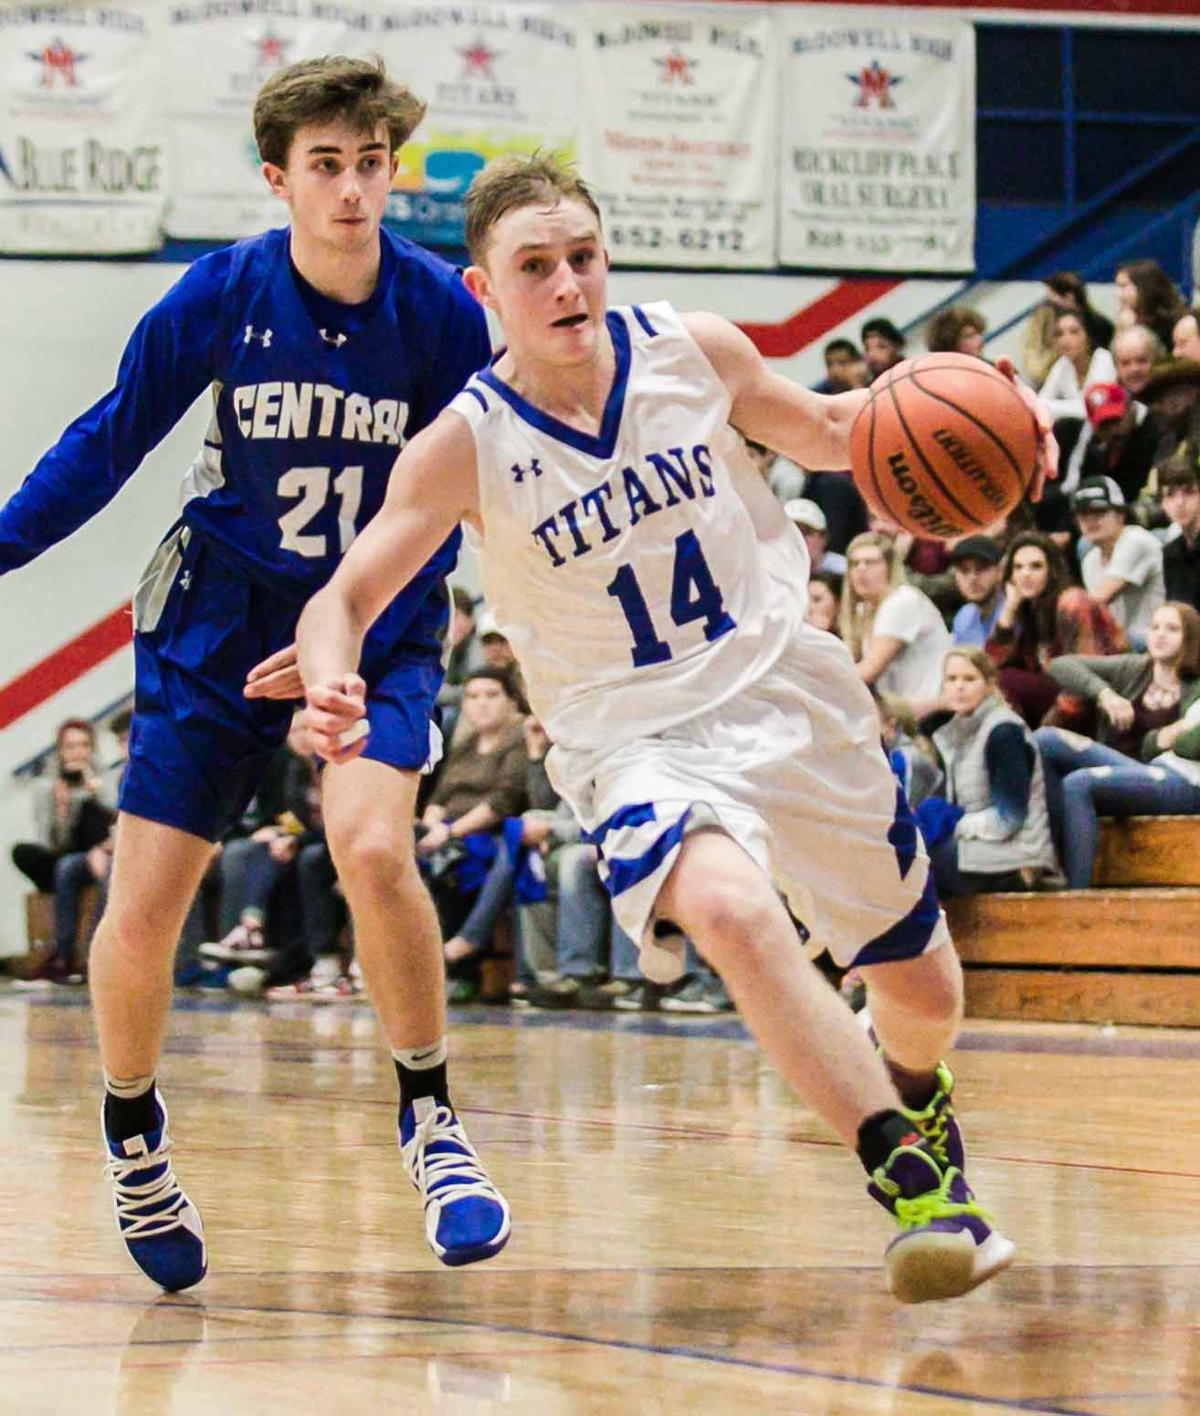 A measure of revenge: Titans hand Hilltoppers first setback of season